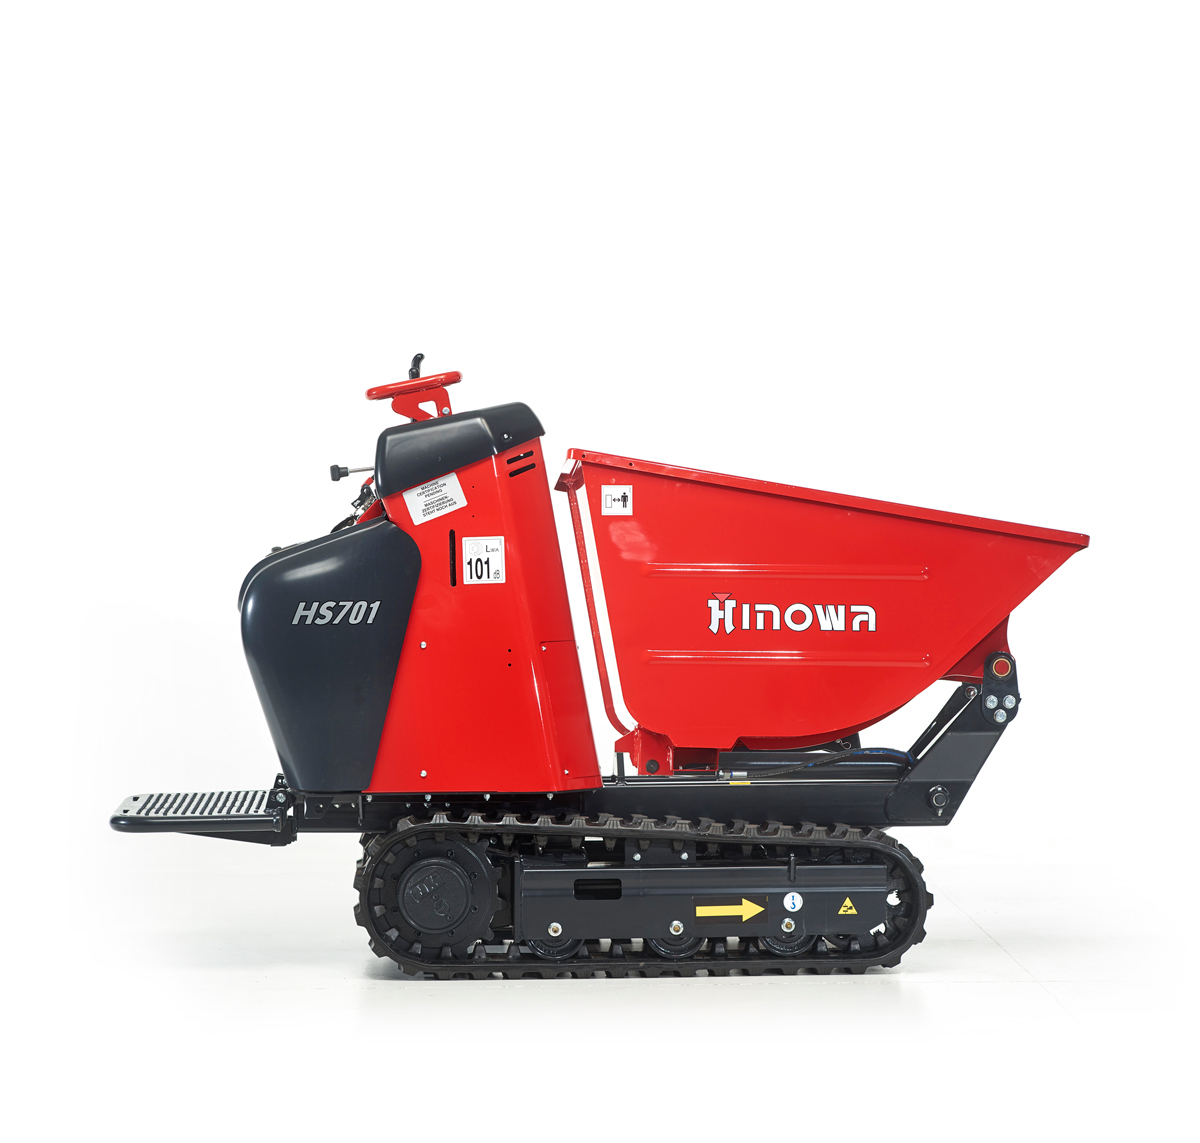 Minidumper HS701 with dumper bed